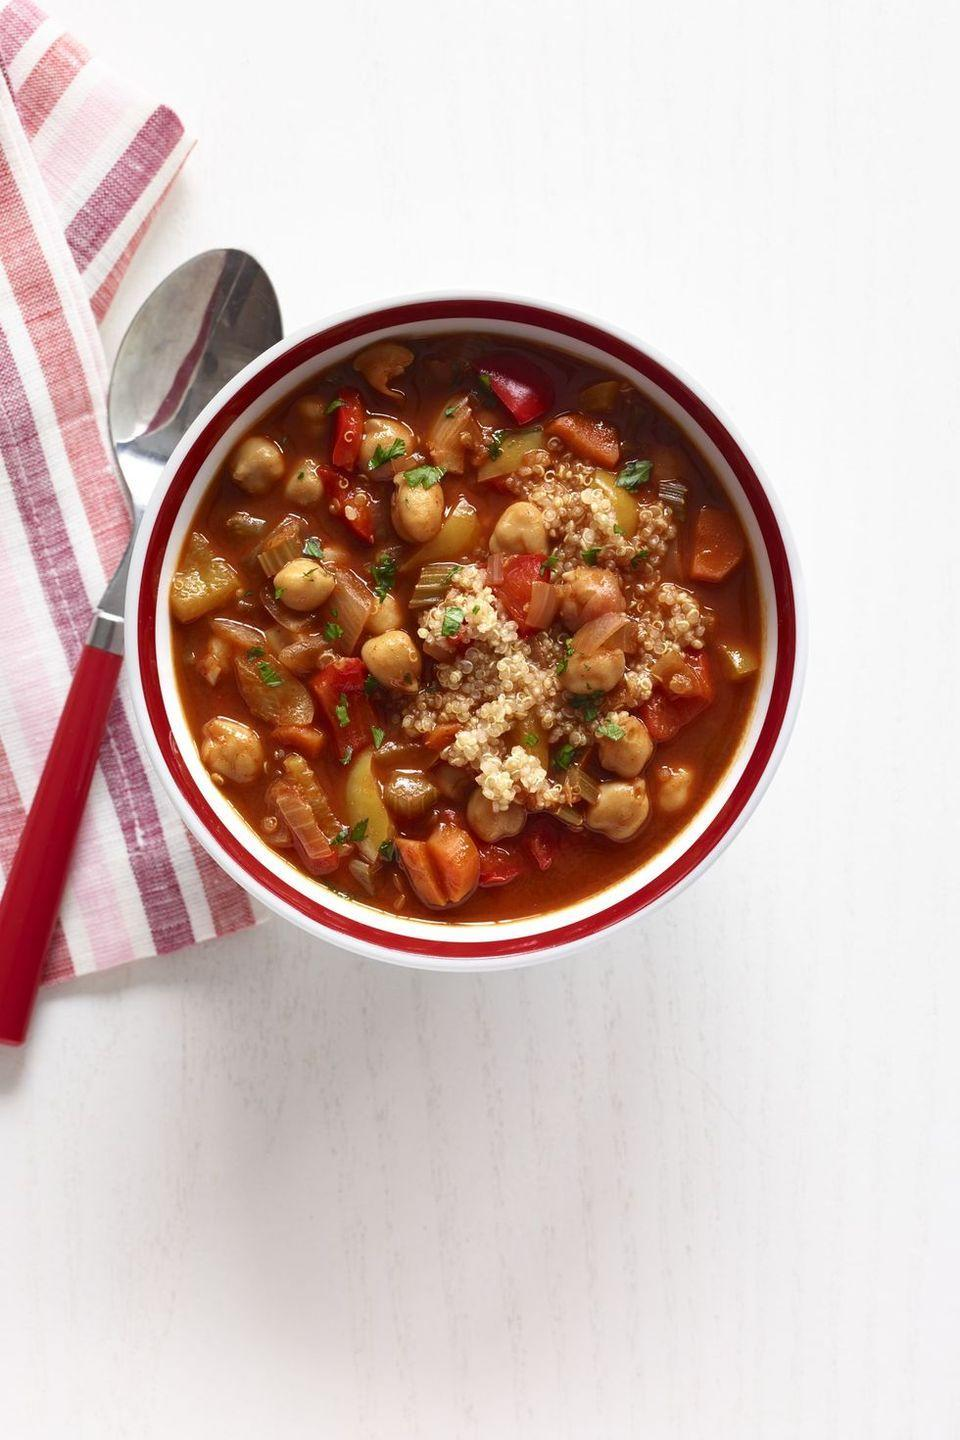 """<p>Quinoa is a great source of vegetarian-friendly protein, and combined with the chickpeas it makes this soup a hearty, protein-packed meal. </p><p><strong><em><a href=""""https://www.womansday.com/food-recipes/food-drinks/recipes/a12561/chickpea-red-pepper-soup-quinoa-recipe-wdy0214/"""" rel=""""nofollow noopener"""" target=""""_blank"""" data-ylk=""""slk:Get the Chickpea and Red Pepper Soup with Quinoa recipe."""" class=""""link rapid-noclick-resp"""">Get the Chickpea and Red Pepper Soup with Quinoa recipe.</a></em></strong></p>"""